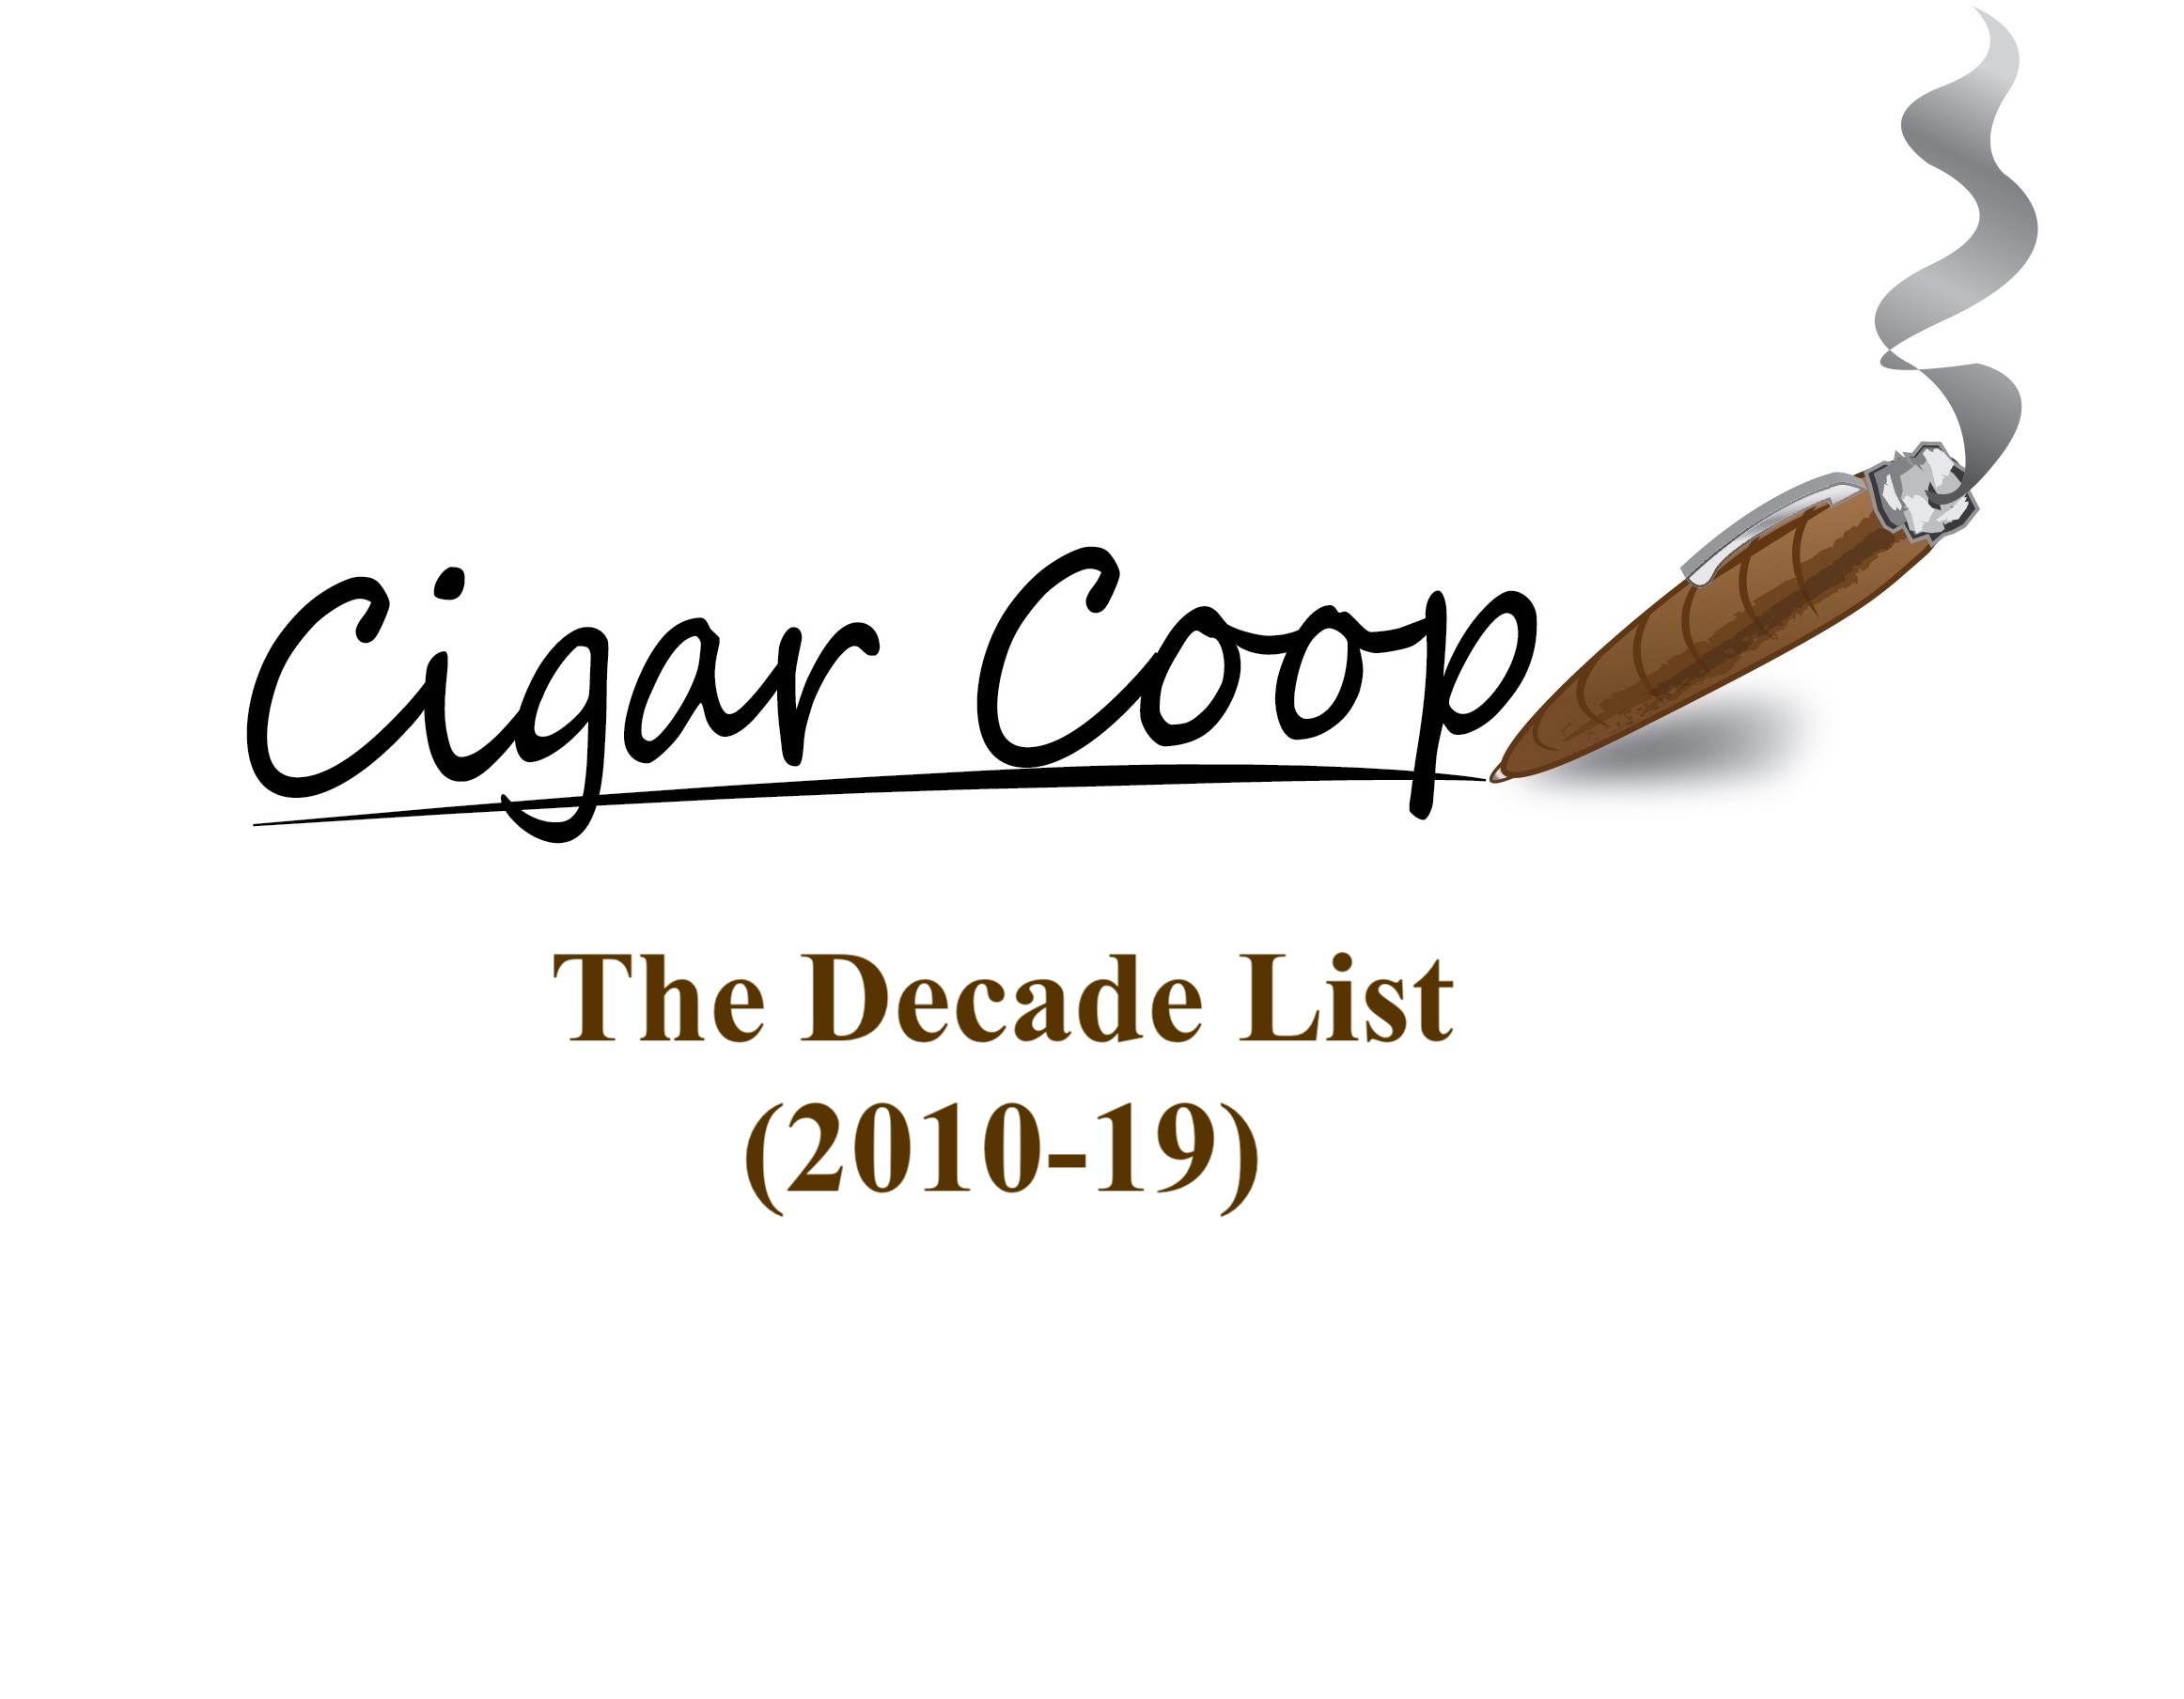 Feature Story: The Decade List – 2010 to 2019